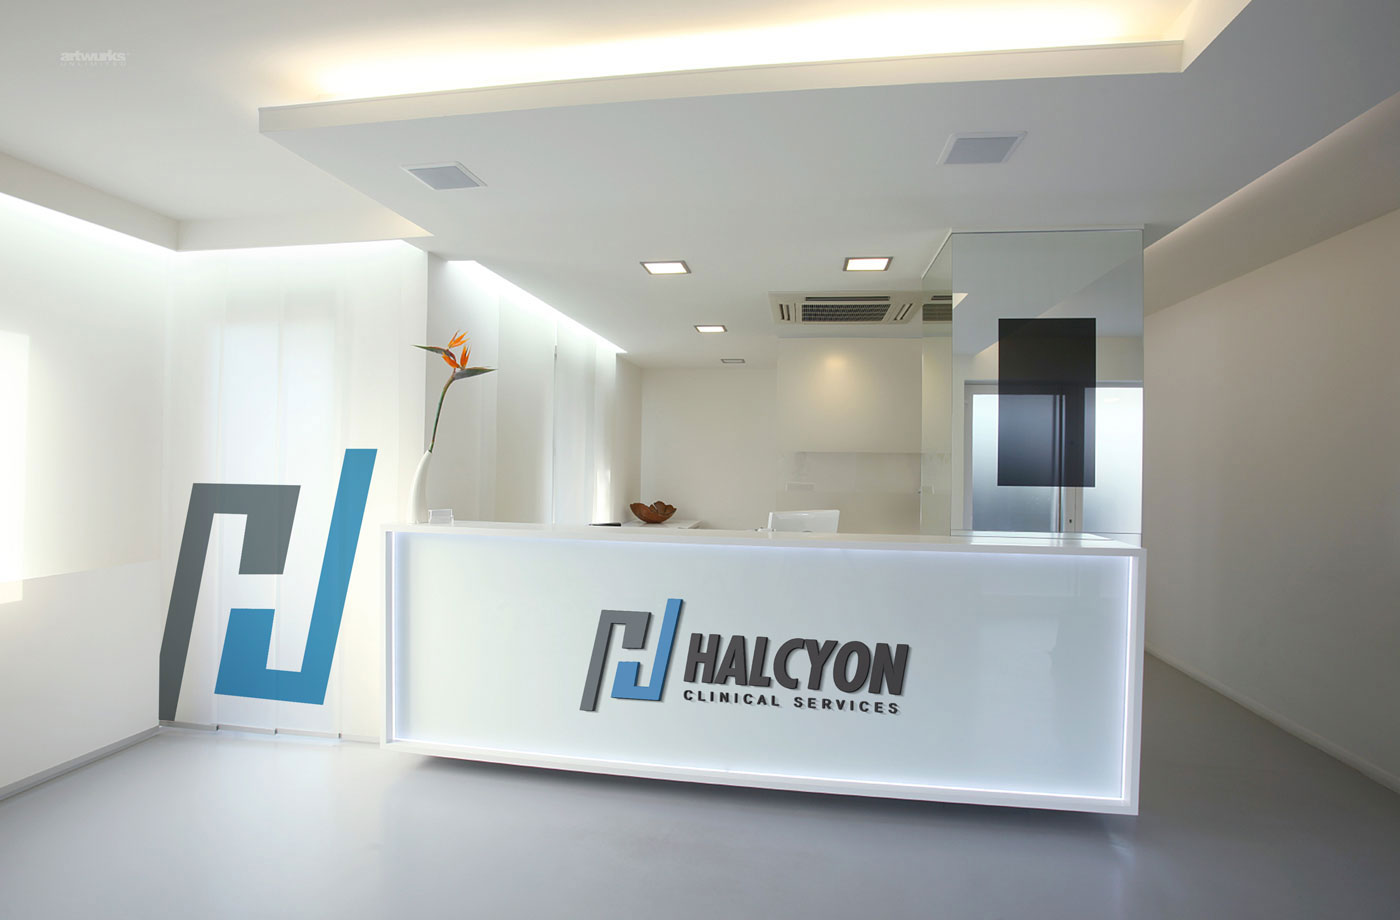 Halcyon Clinical Services Identity